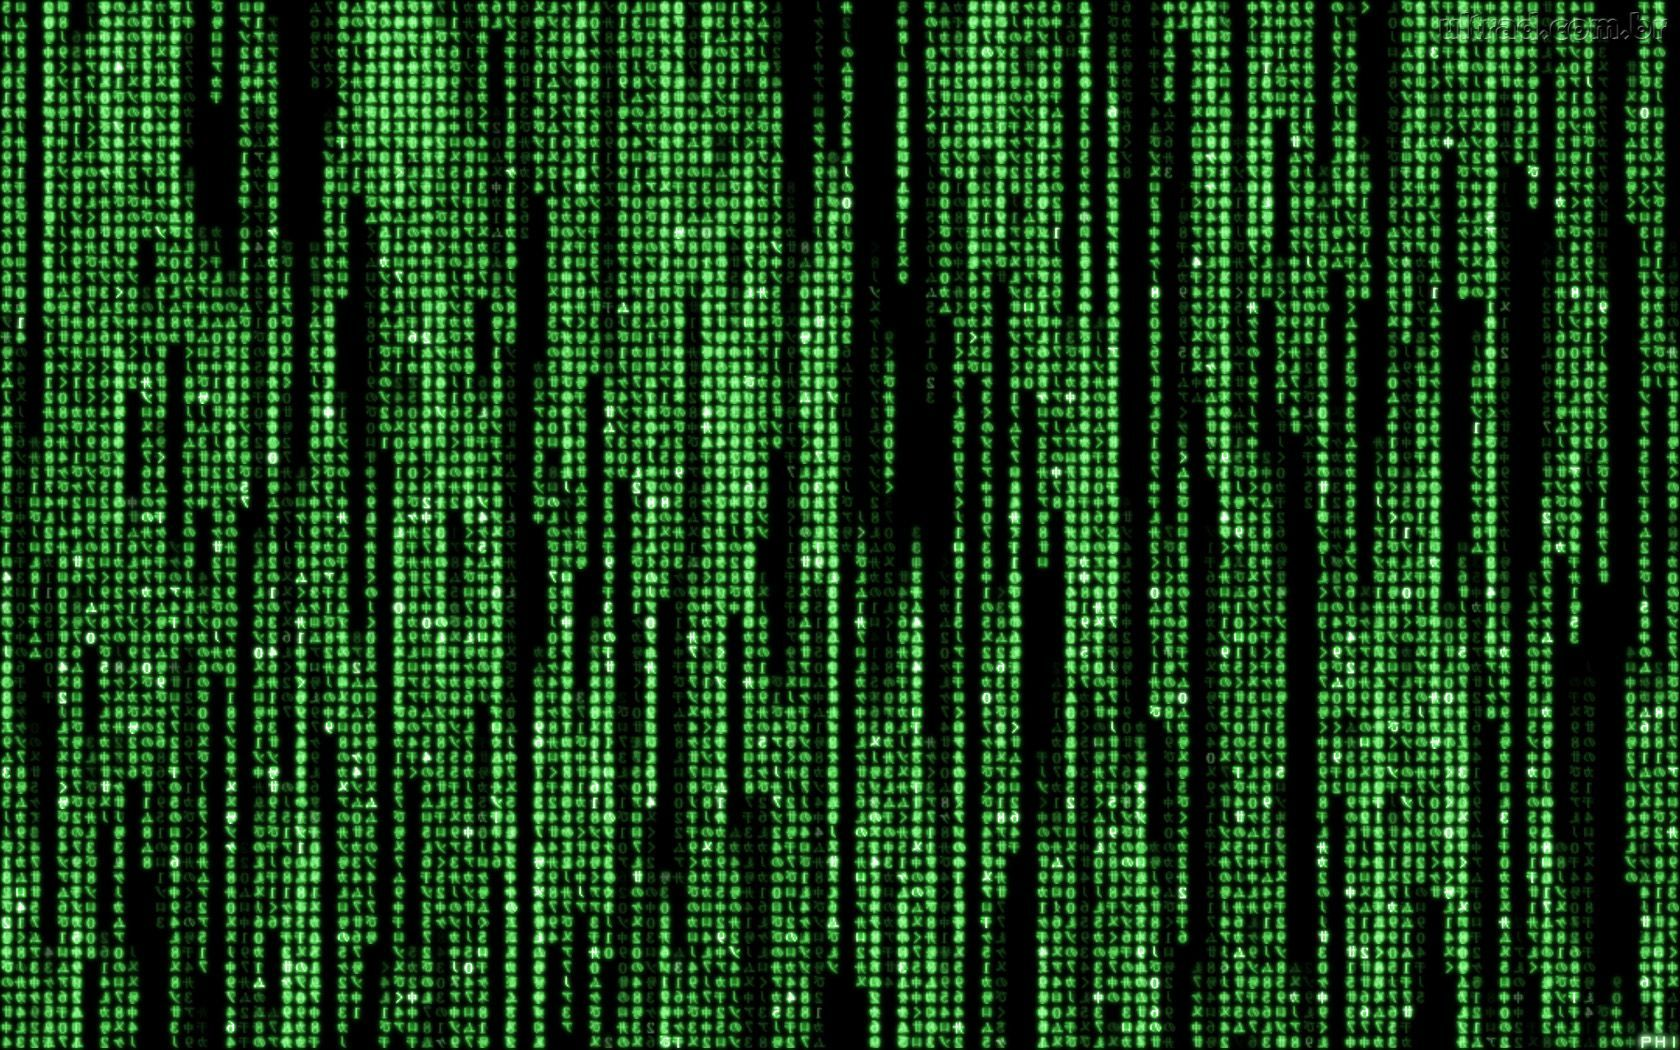 Our Universe May Be A Matrix Like Computer Game Designed By Aliens